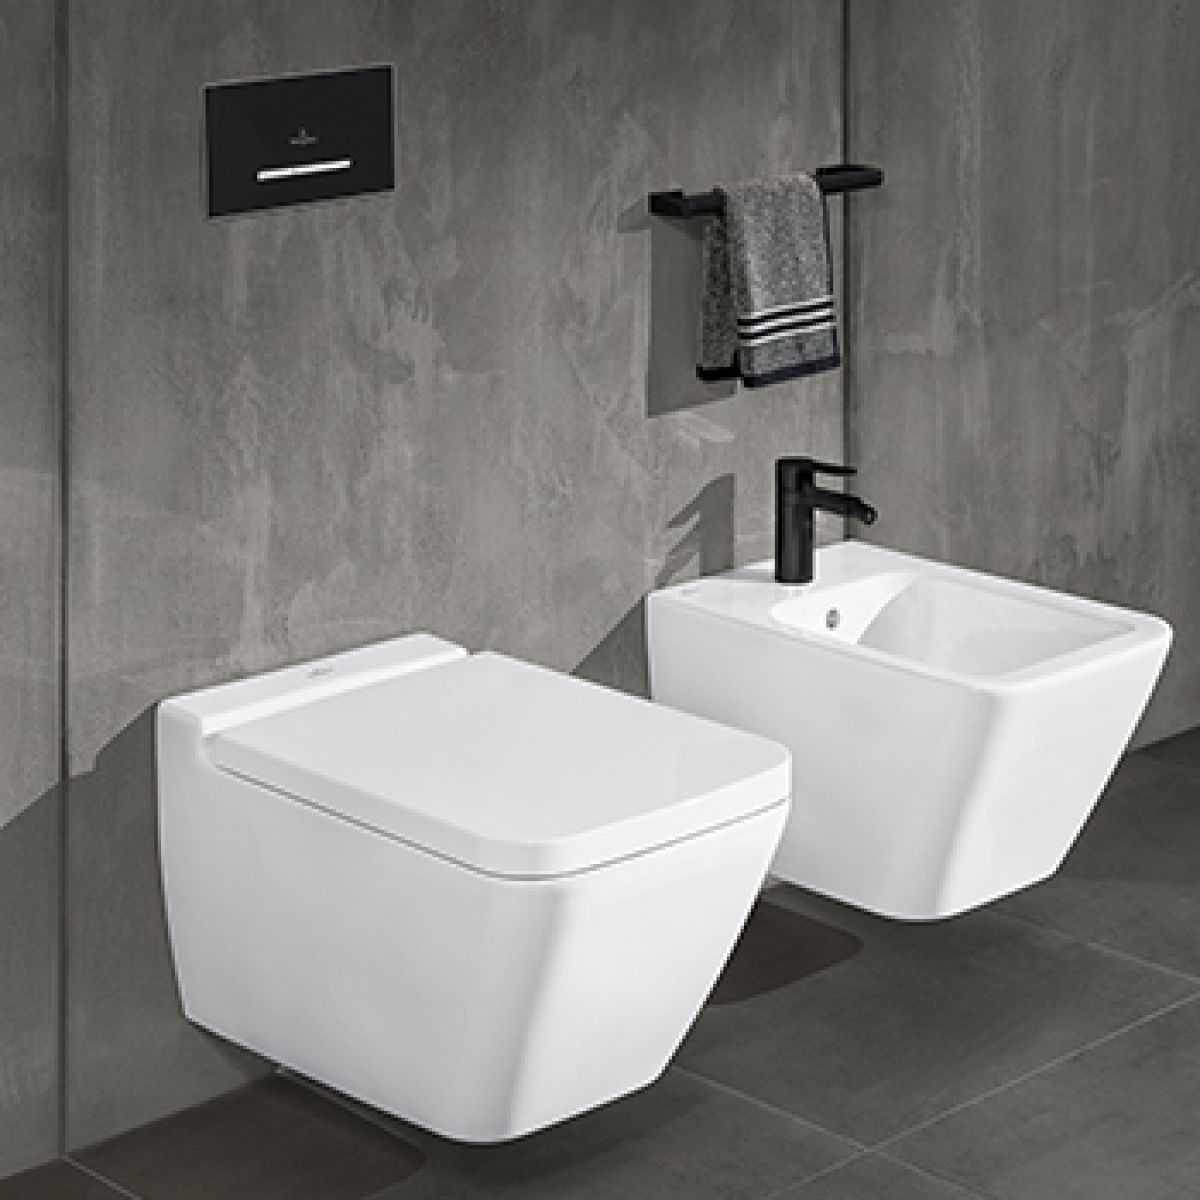 villeroy boch finion wall hung wc uk bathrooms. Black Bedroom Furniture Sets. Home Design Ideas